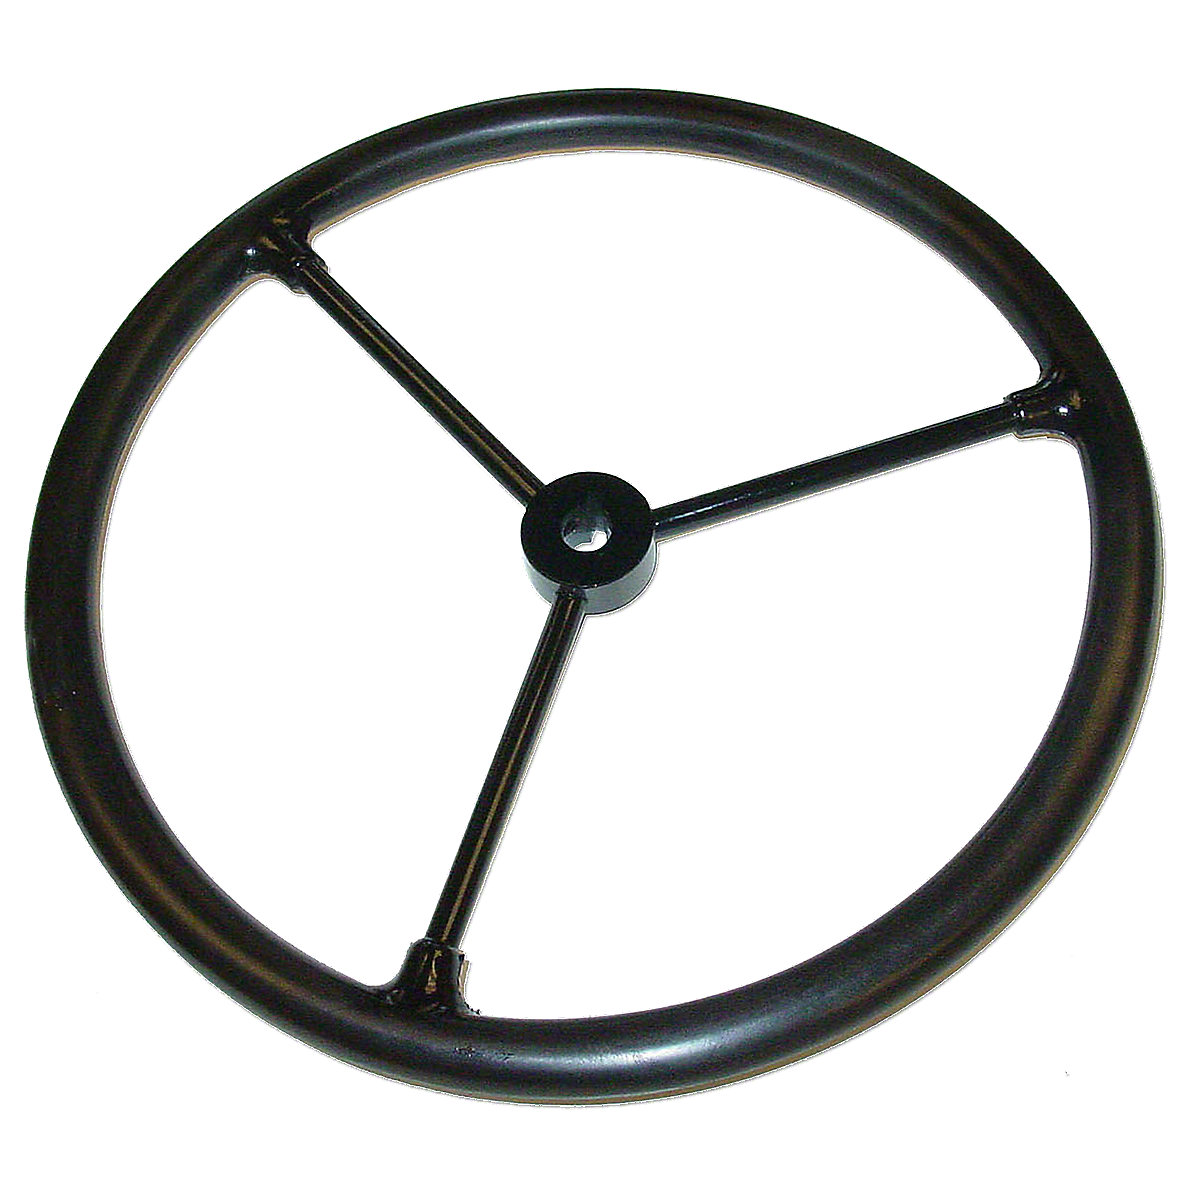 15 Steering Wheel For Allis Chalmers: B, C, CA.